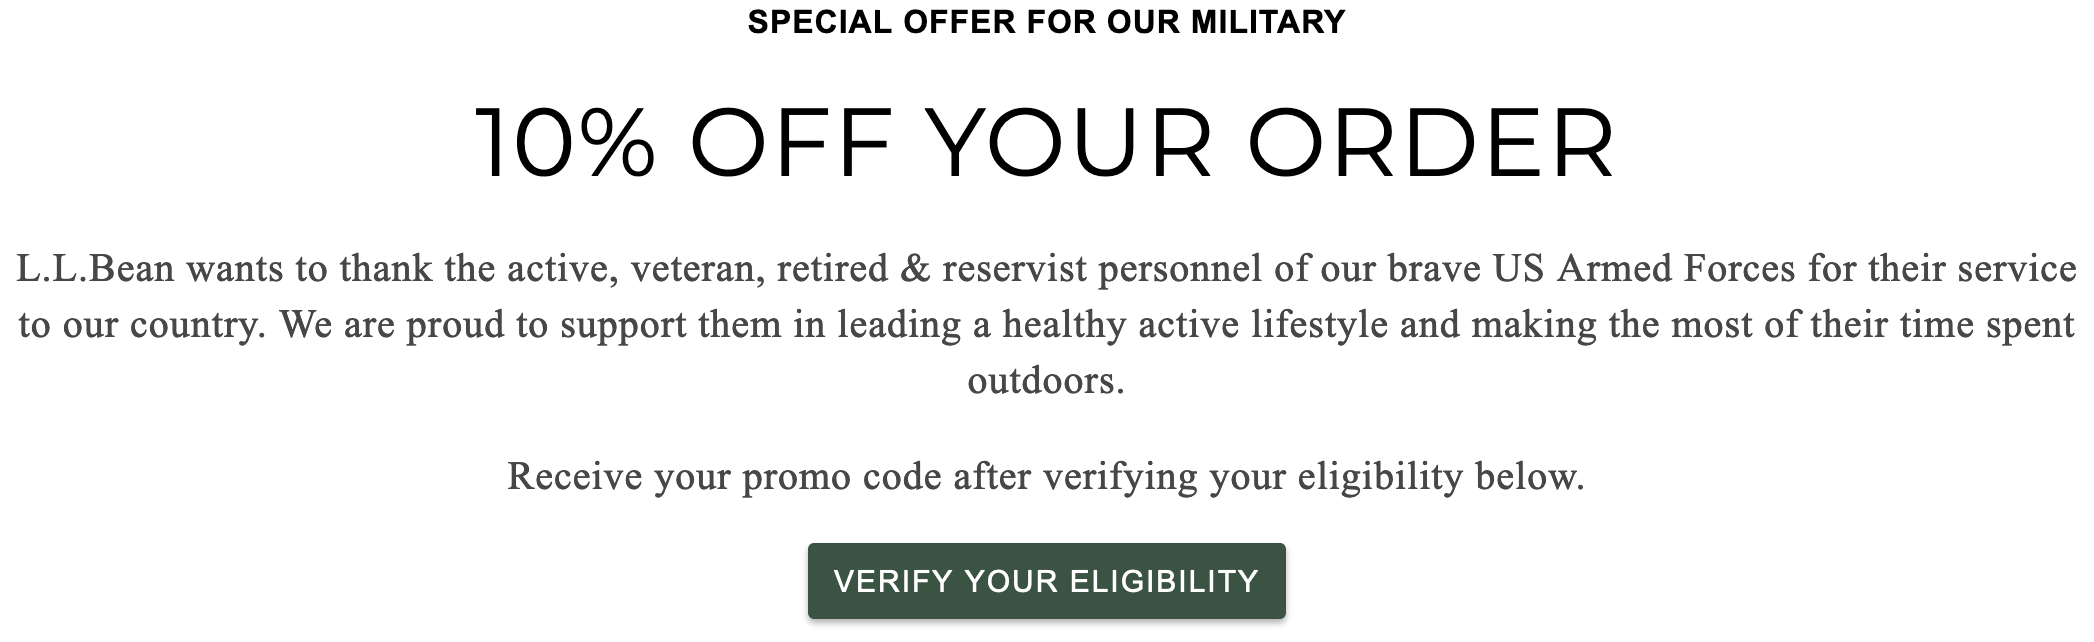 L.L. Bean Military Veteran Discounts